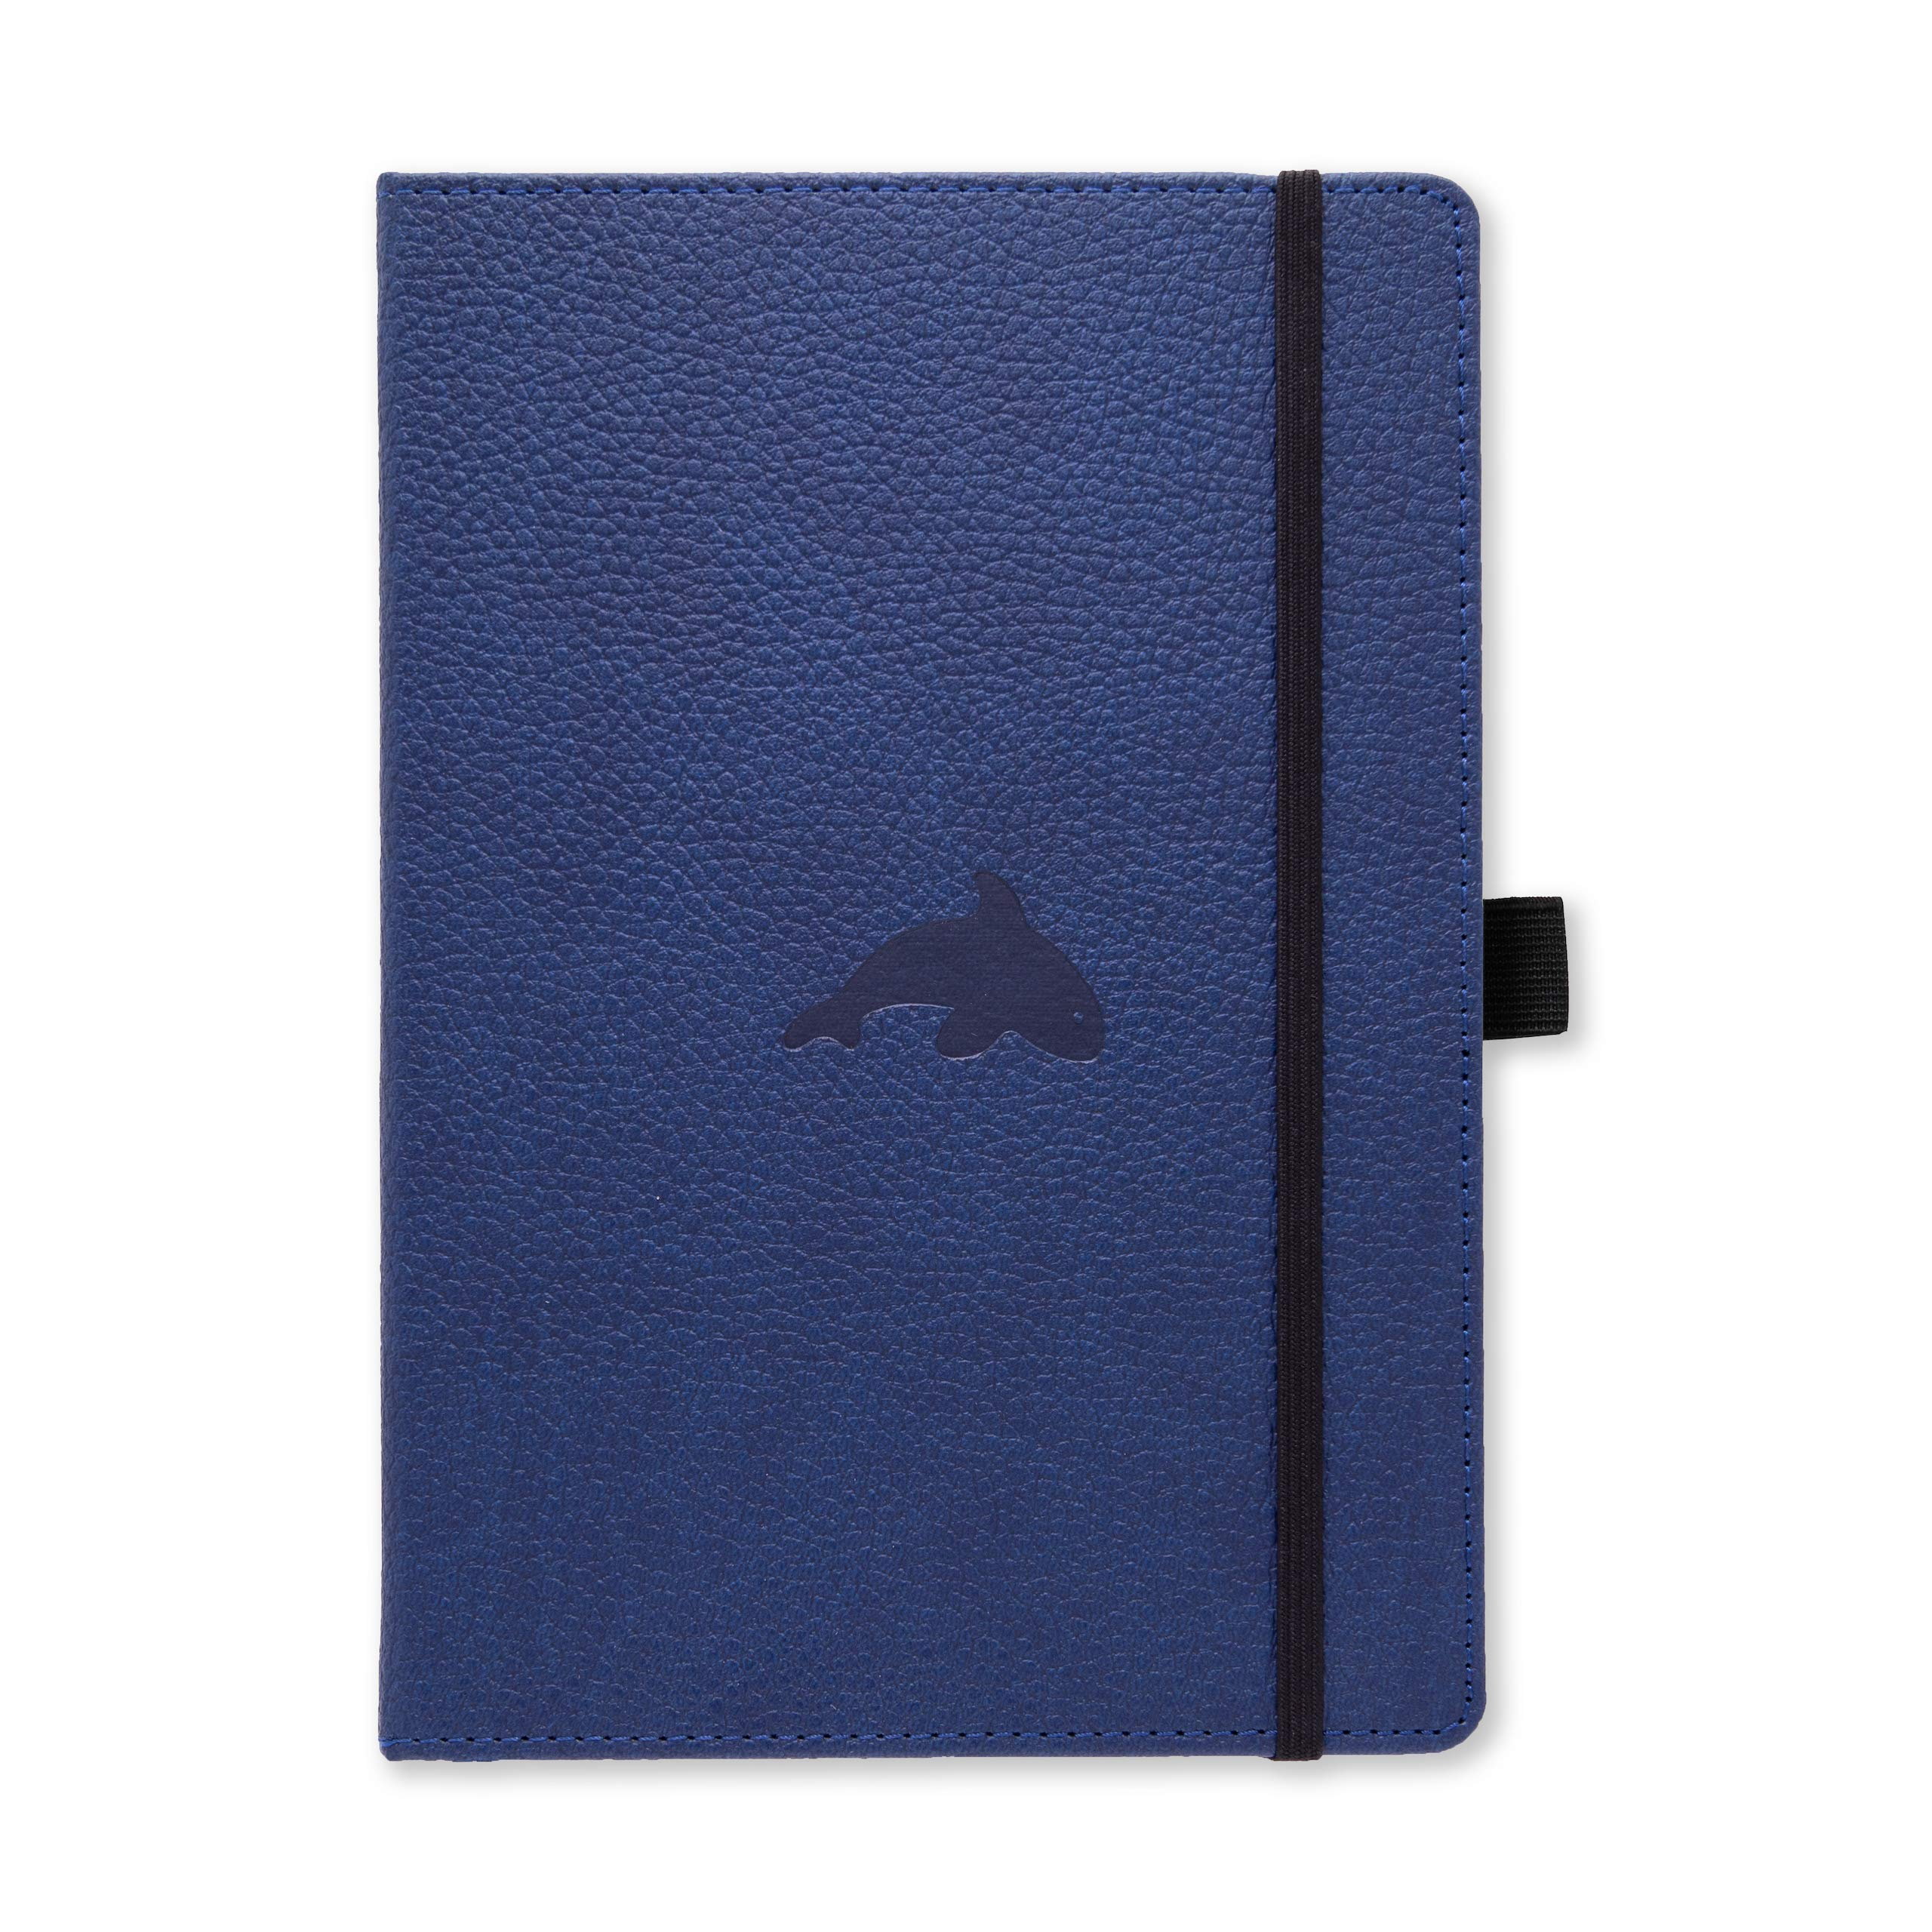 Dingbats Wildlife Dotted Hardcover Notebook - PU Leather, Perforated 100gsm Ink-Proof Paper, Pocket, Elastic Closure, Pen Holder, Bookmark (Blue Whale, Medium A5+ (6.3 x 8.5))